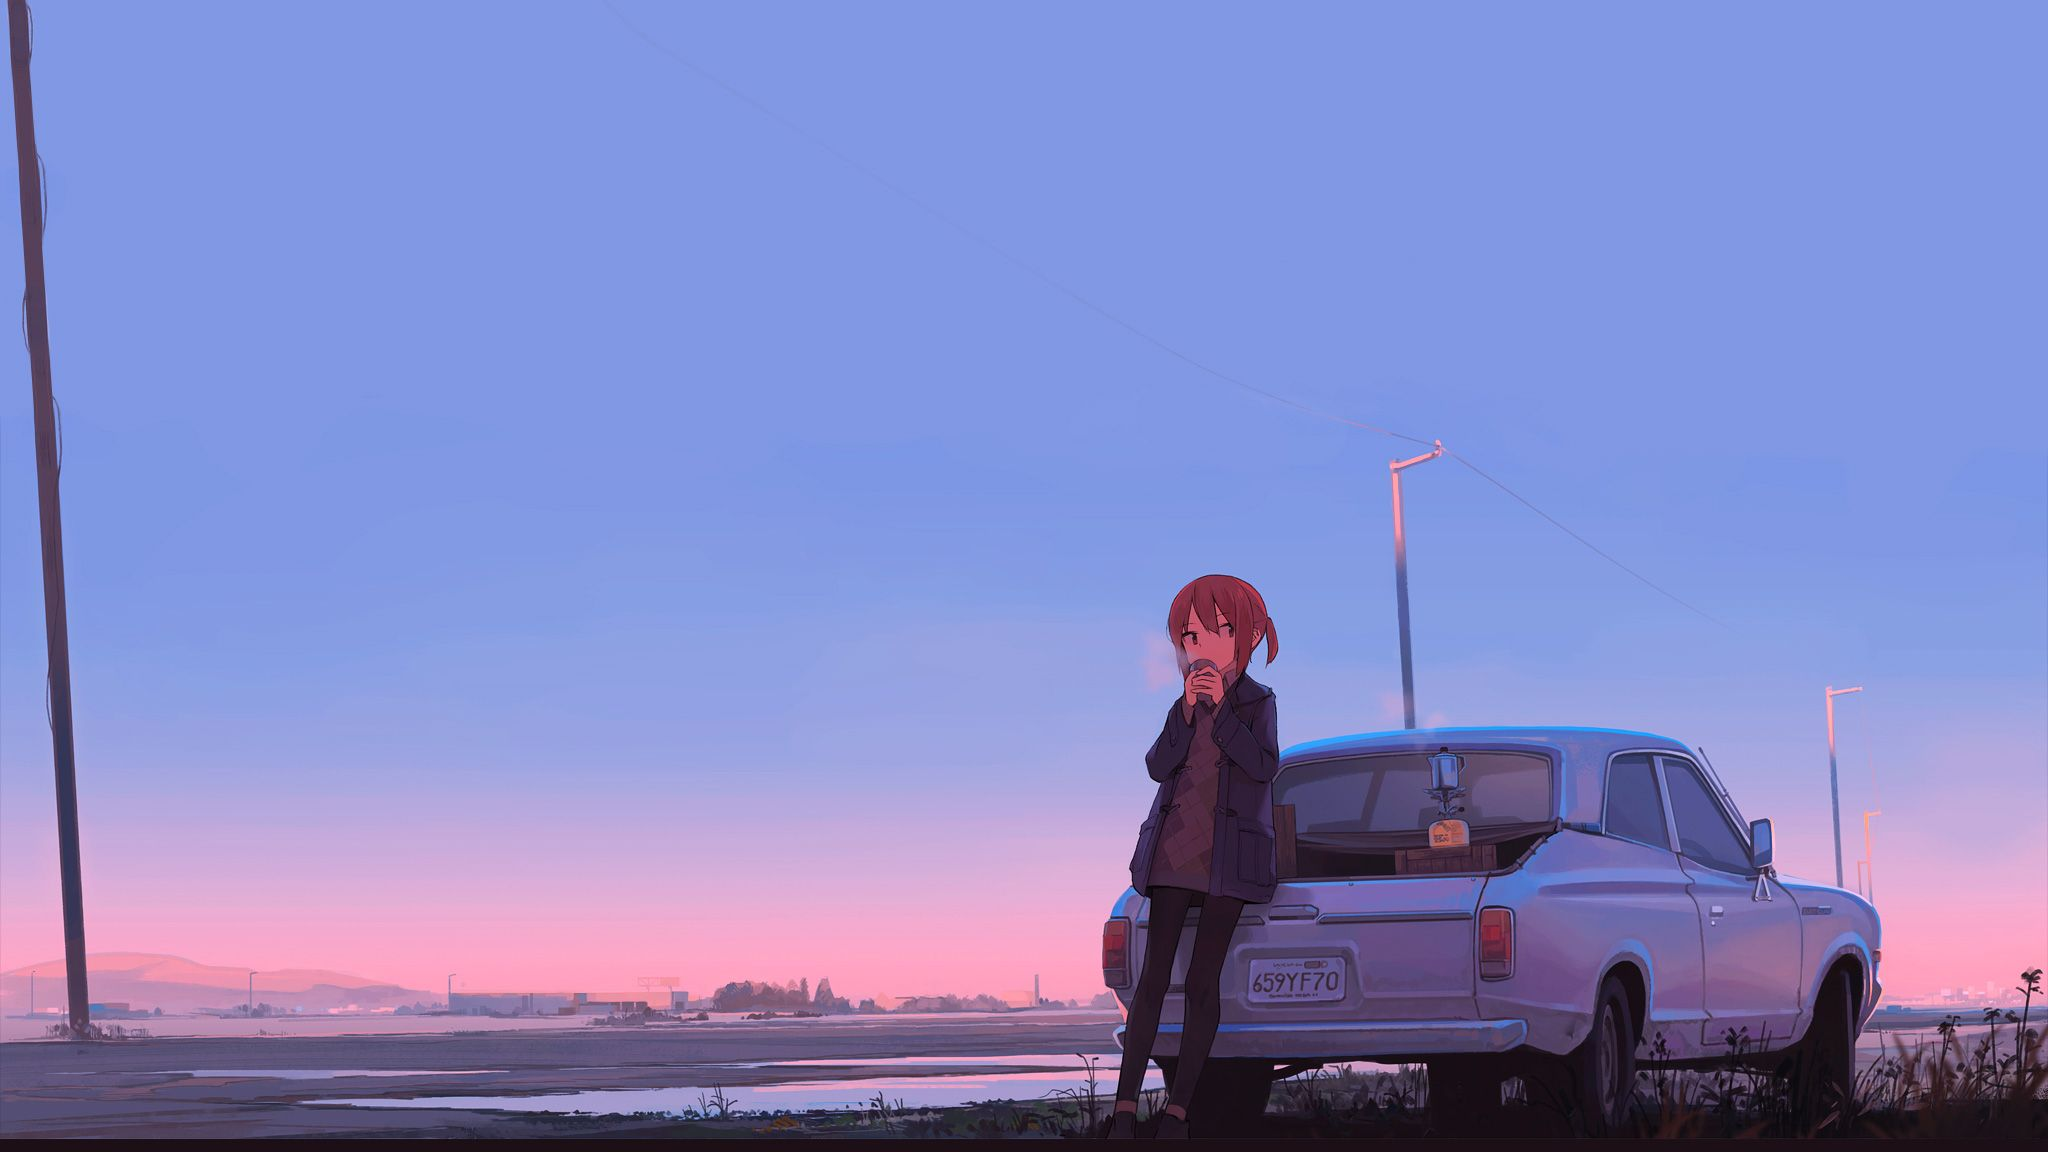 Car Anime Wallpapers   Top Car Anime Backgrounds 2048x1152